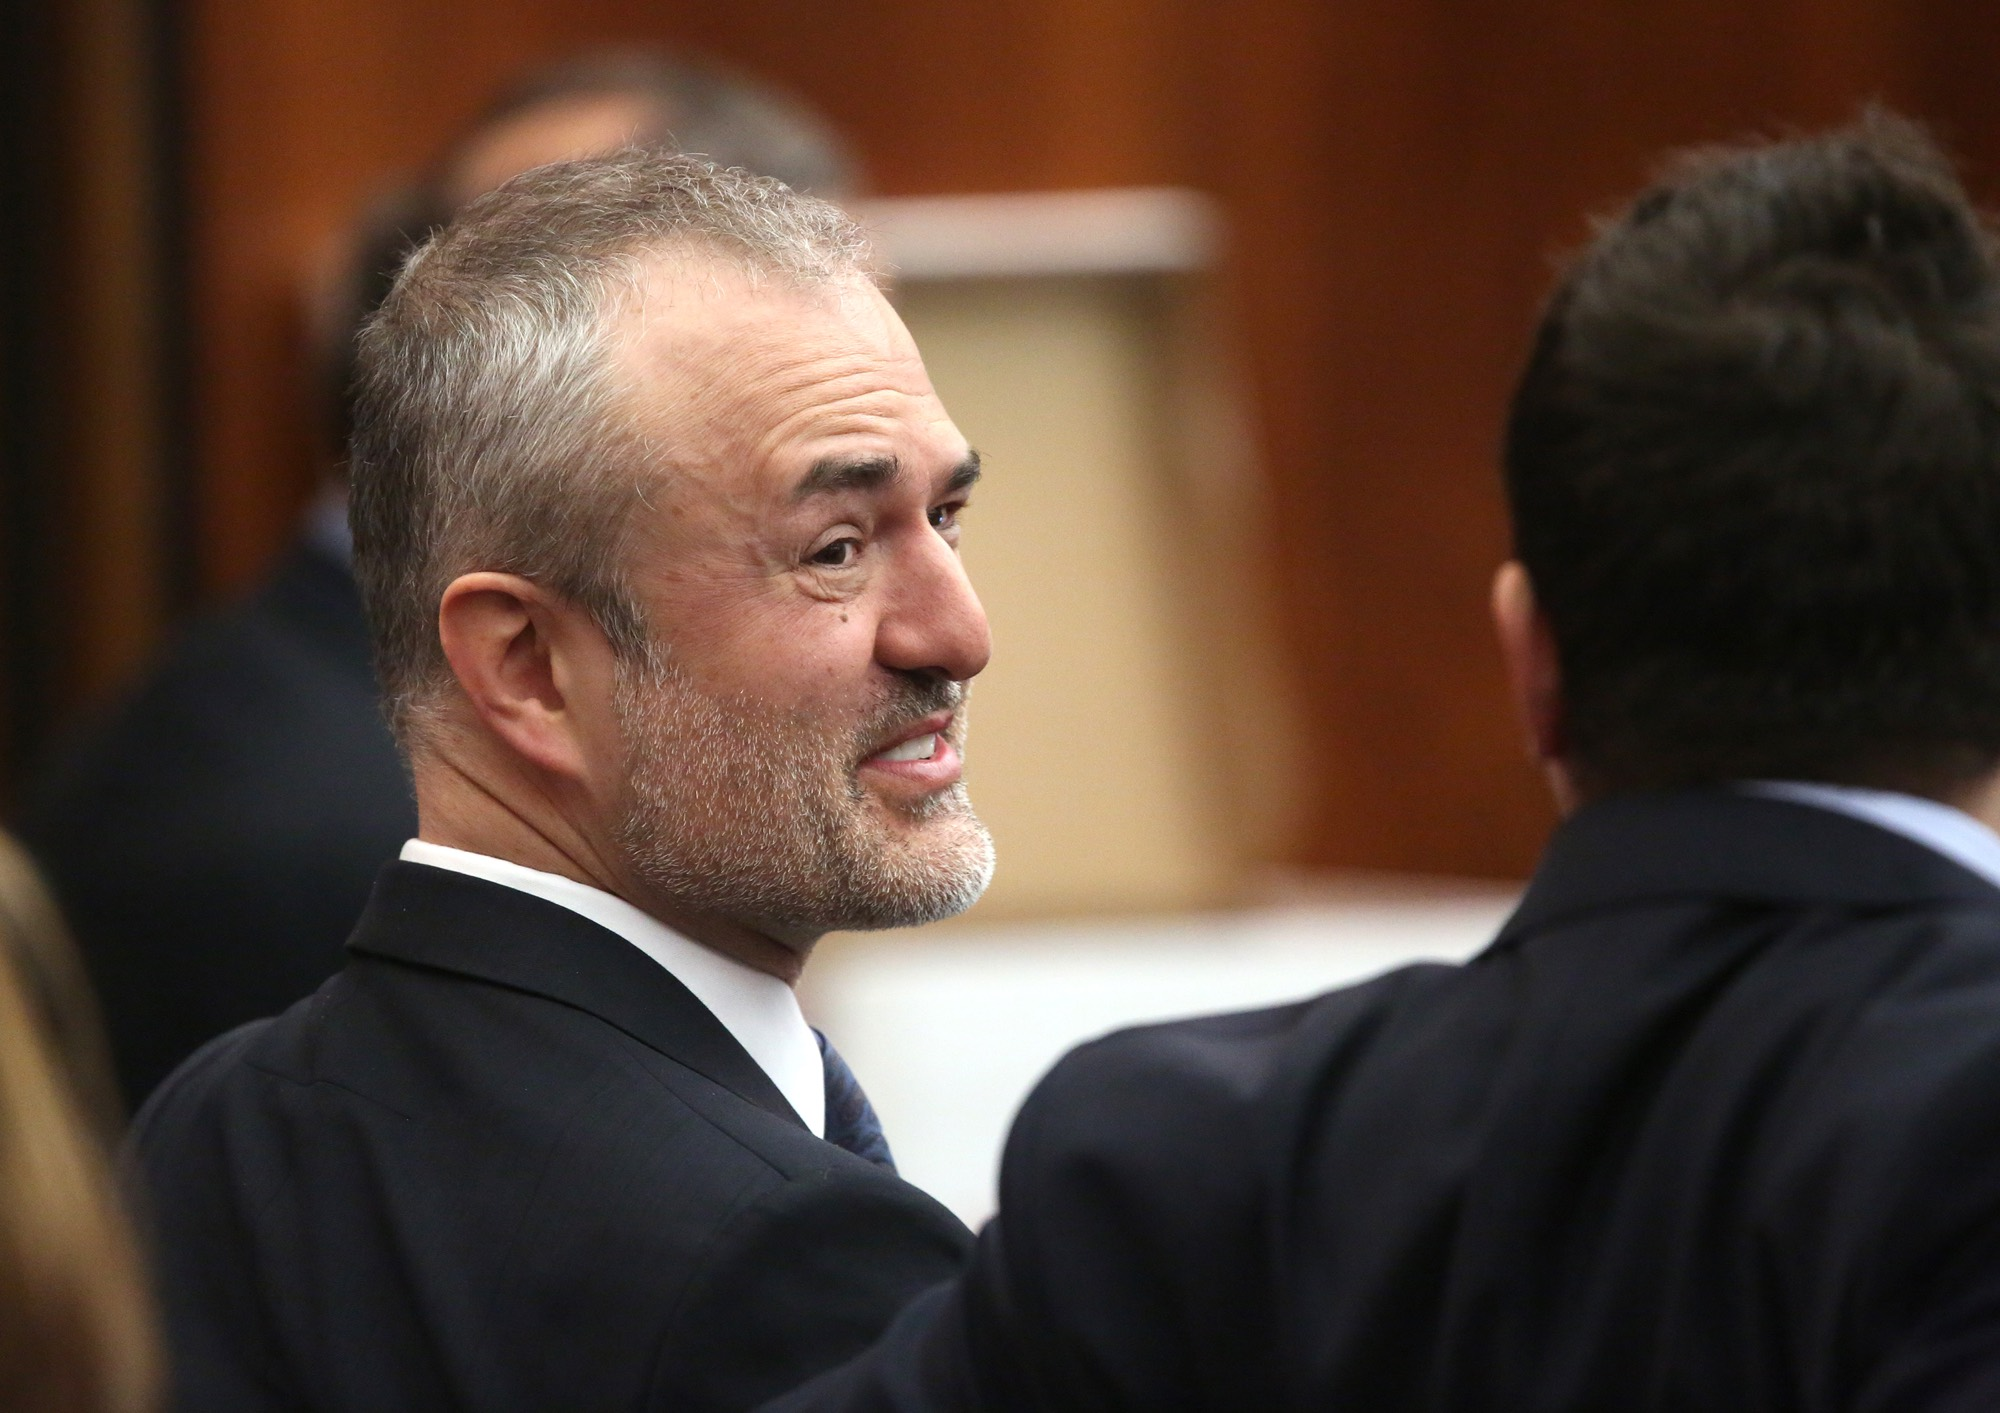 Gawker founder Nick Denton talks with his legal team before Hulk Hogan testifies in Florida court, March 8, 2016.